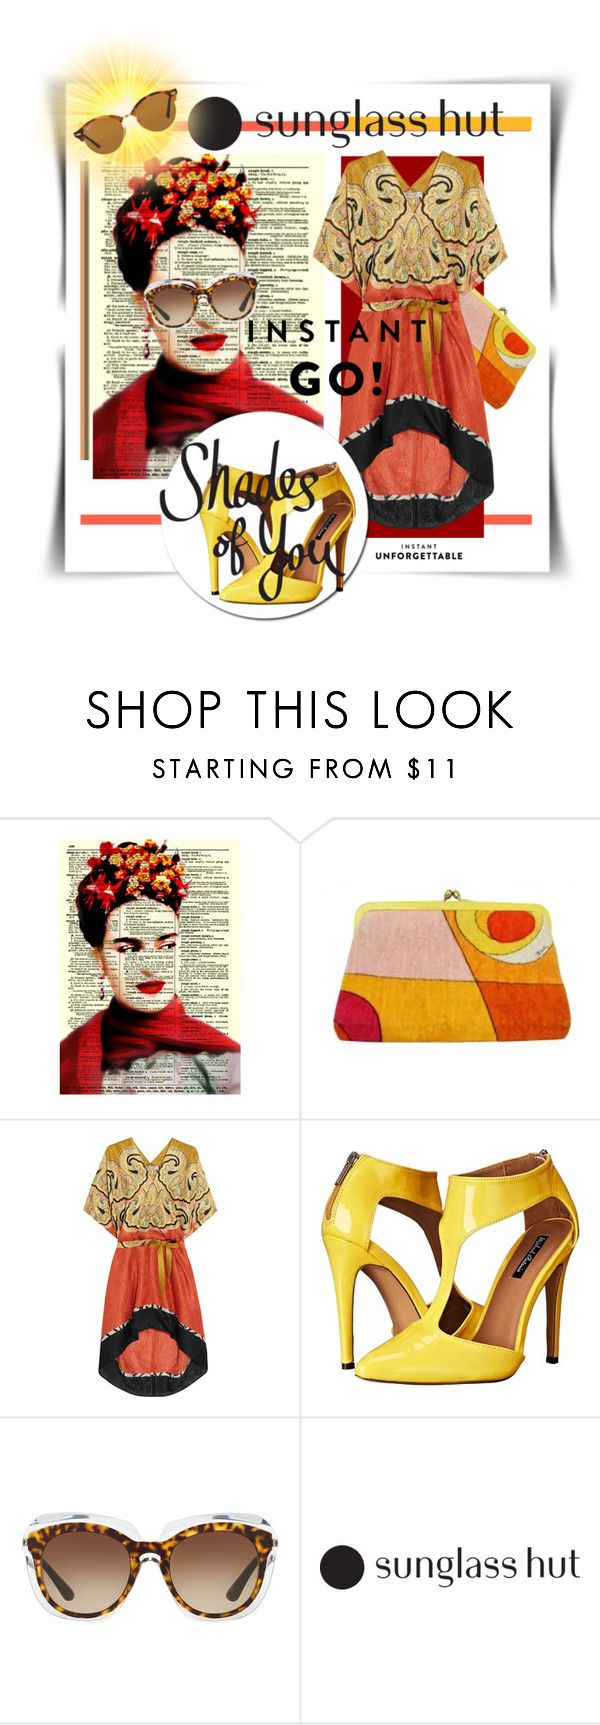 """""""Shades of You: Sunglass Hut Contest Entry"""" by kari-c ❤ liked on Polyvore featuring Emilio Pucci, Etro, Michael Antonio, Dolce&Gabbana, Ray-Ban and shadesofyou"""